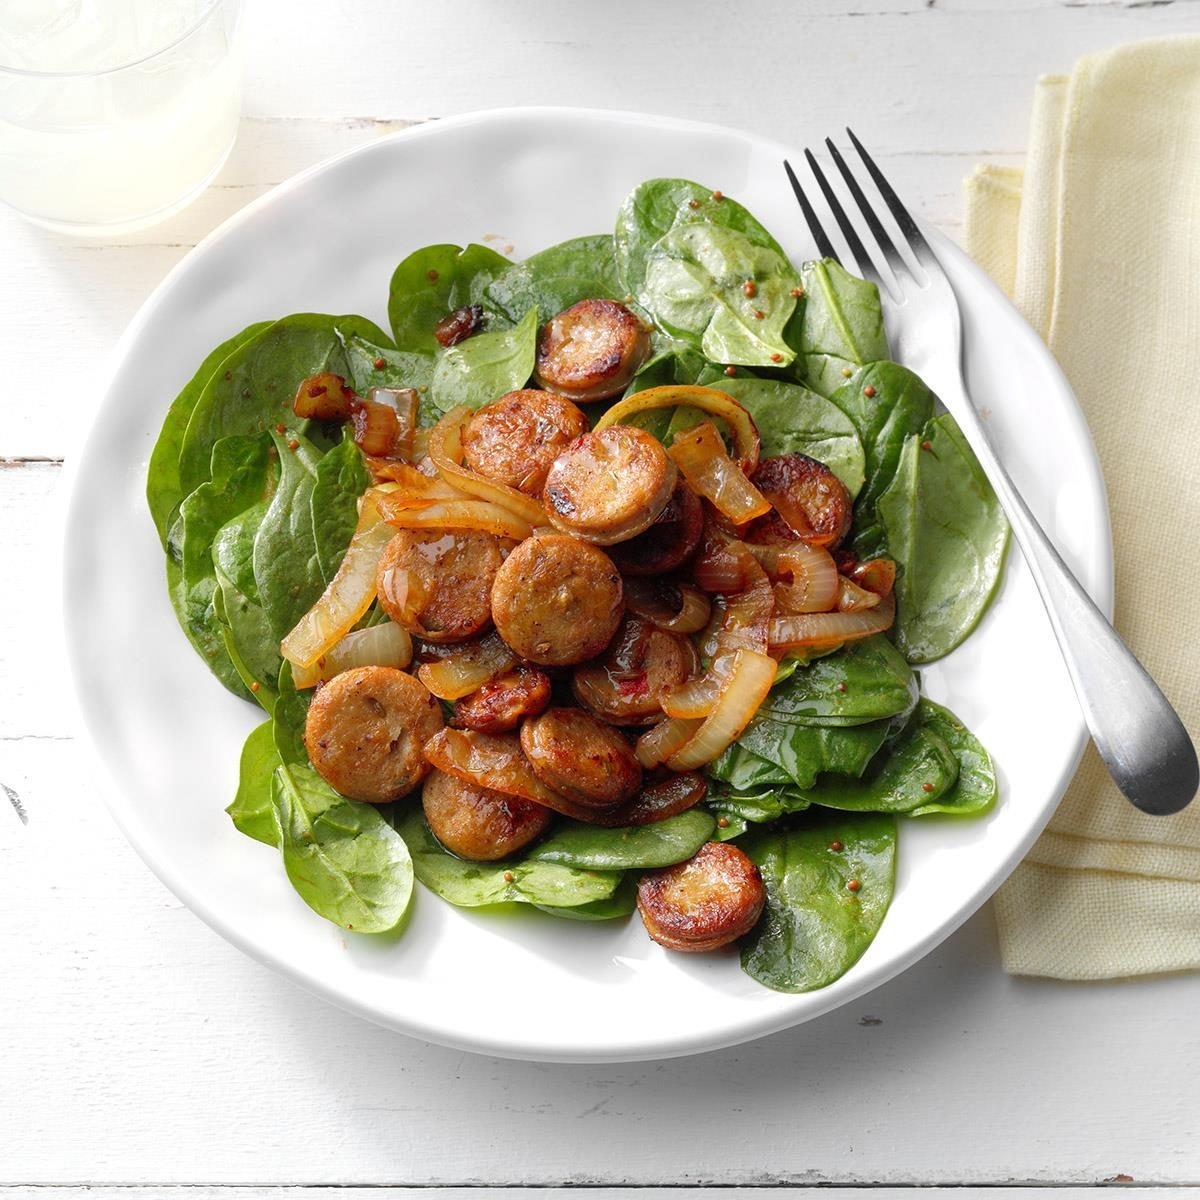 Day 22: Sausage Spinach Salad